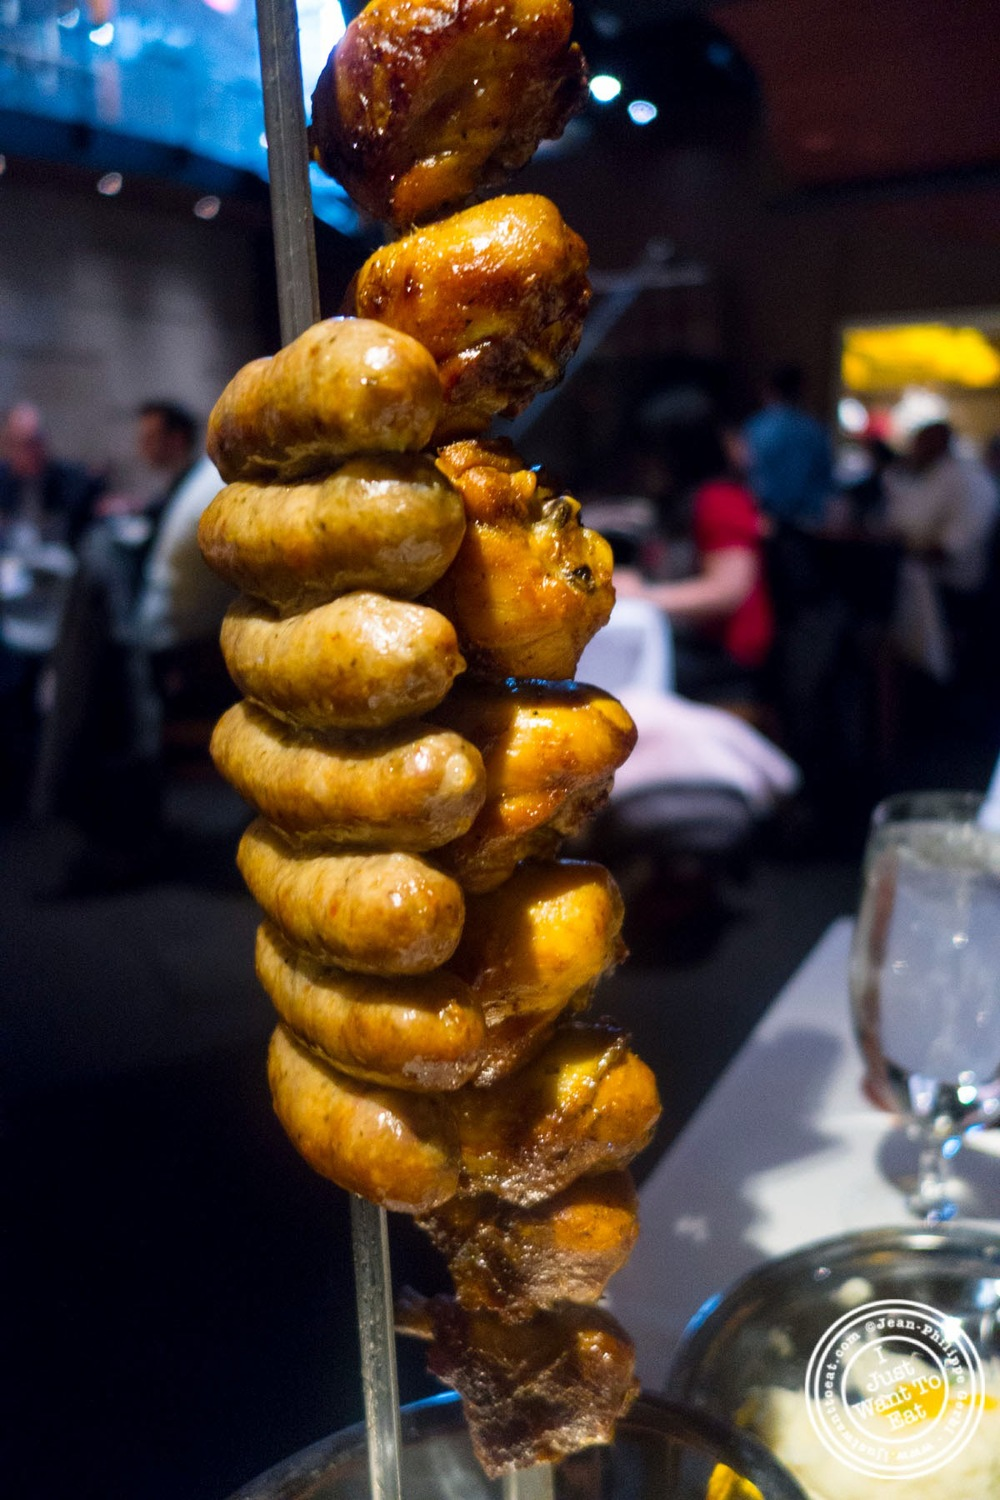 image of pork sausage or Linguiça at Fogo De Chao Brazilian steakhouse in NYC, New York